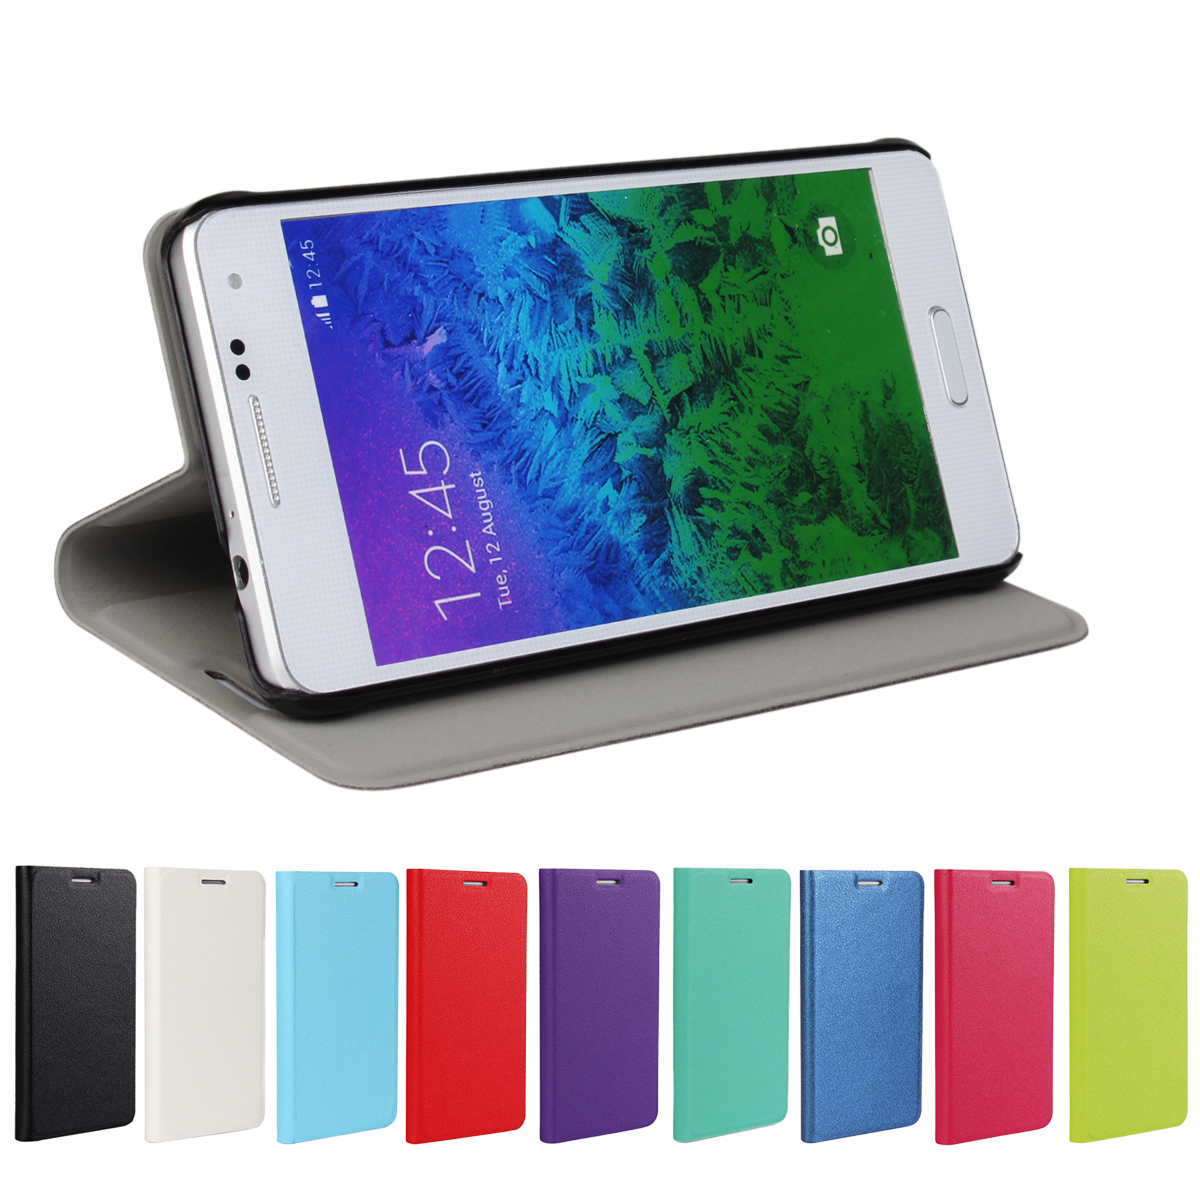 Magnetic Case for Samsung Galaxy Alpha G850f Cover Flip Book Stand Leather Capinhas Etui Coque Para Funda Hoesje Capa CarcasasMagnetic Case for Samsung Galaxy Alpha G850f Cover Flip Book Stand Leather Capinhas Etui Coque Para Funda Hoesje Capa Carcasas